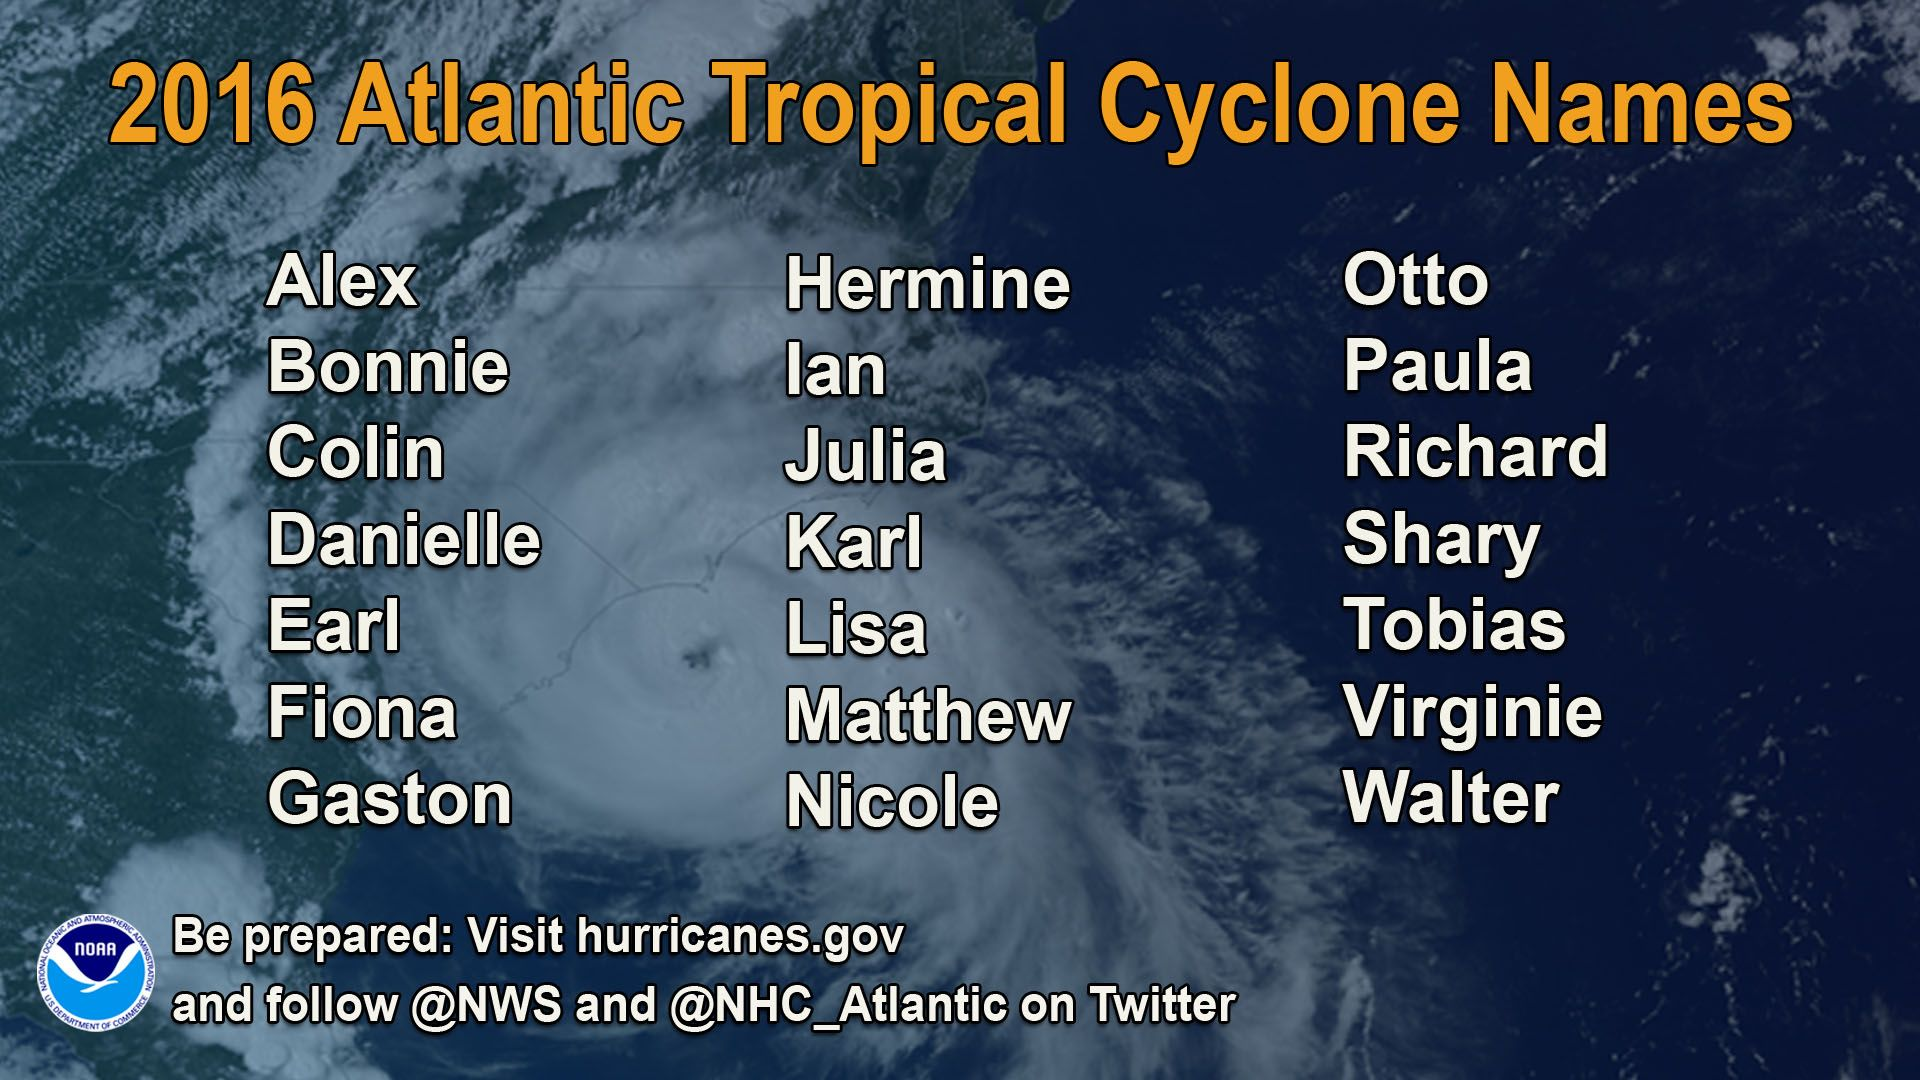 Hurricane Season Be Prepared With Images Atlantic Hurricane Hurricane Names Hurricane Season